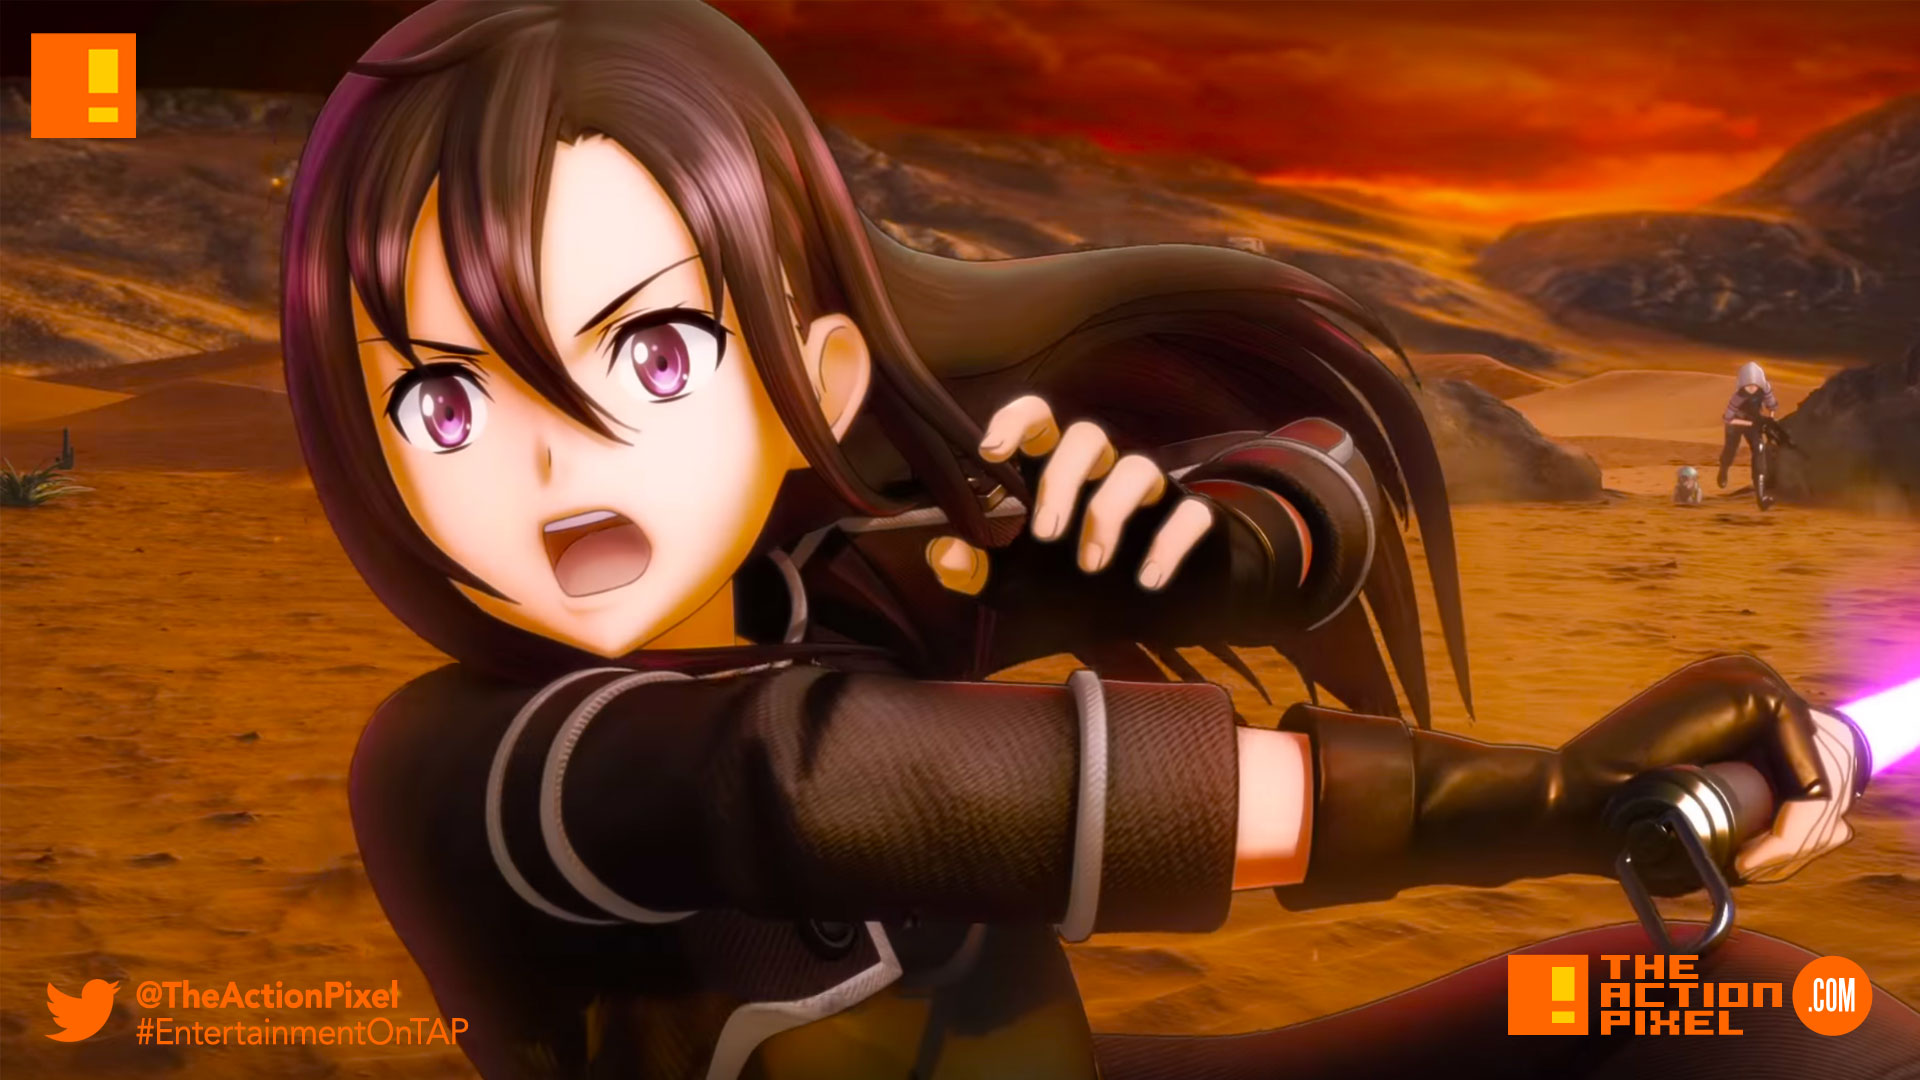 sao, sword art online, sword art online: fatal bullet, bandai namco entertainment , bandai namco, the action pixel, entertainment on tap,